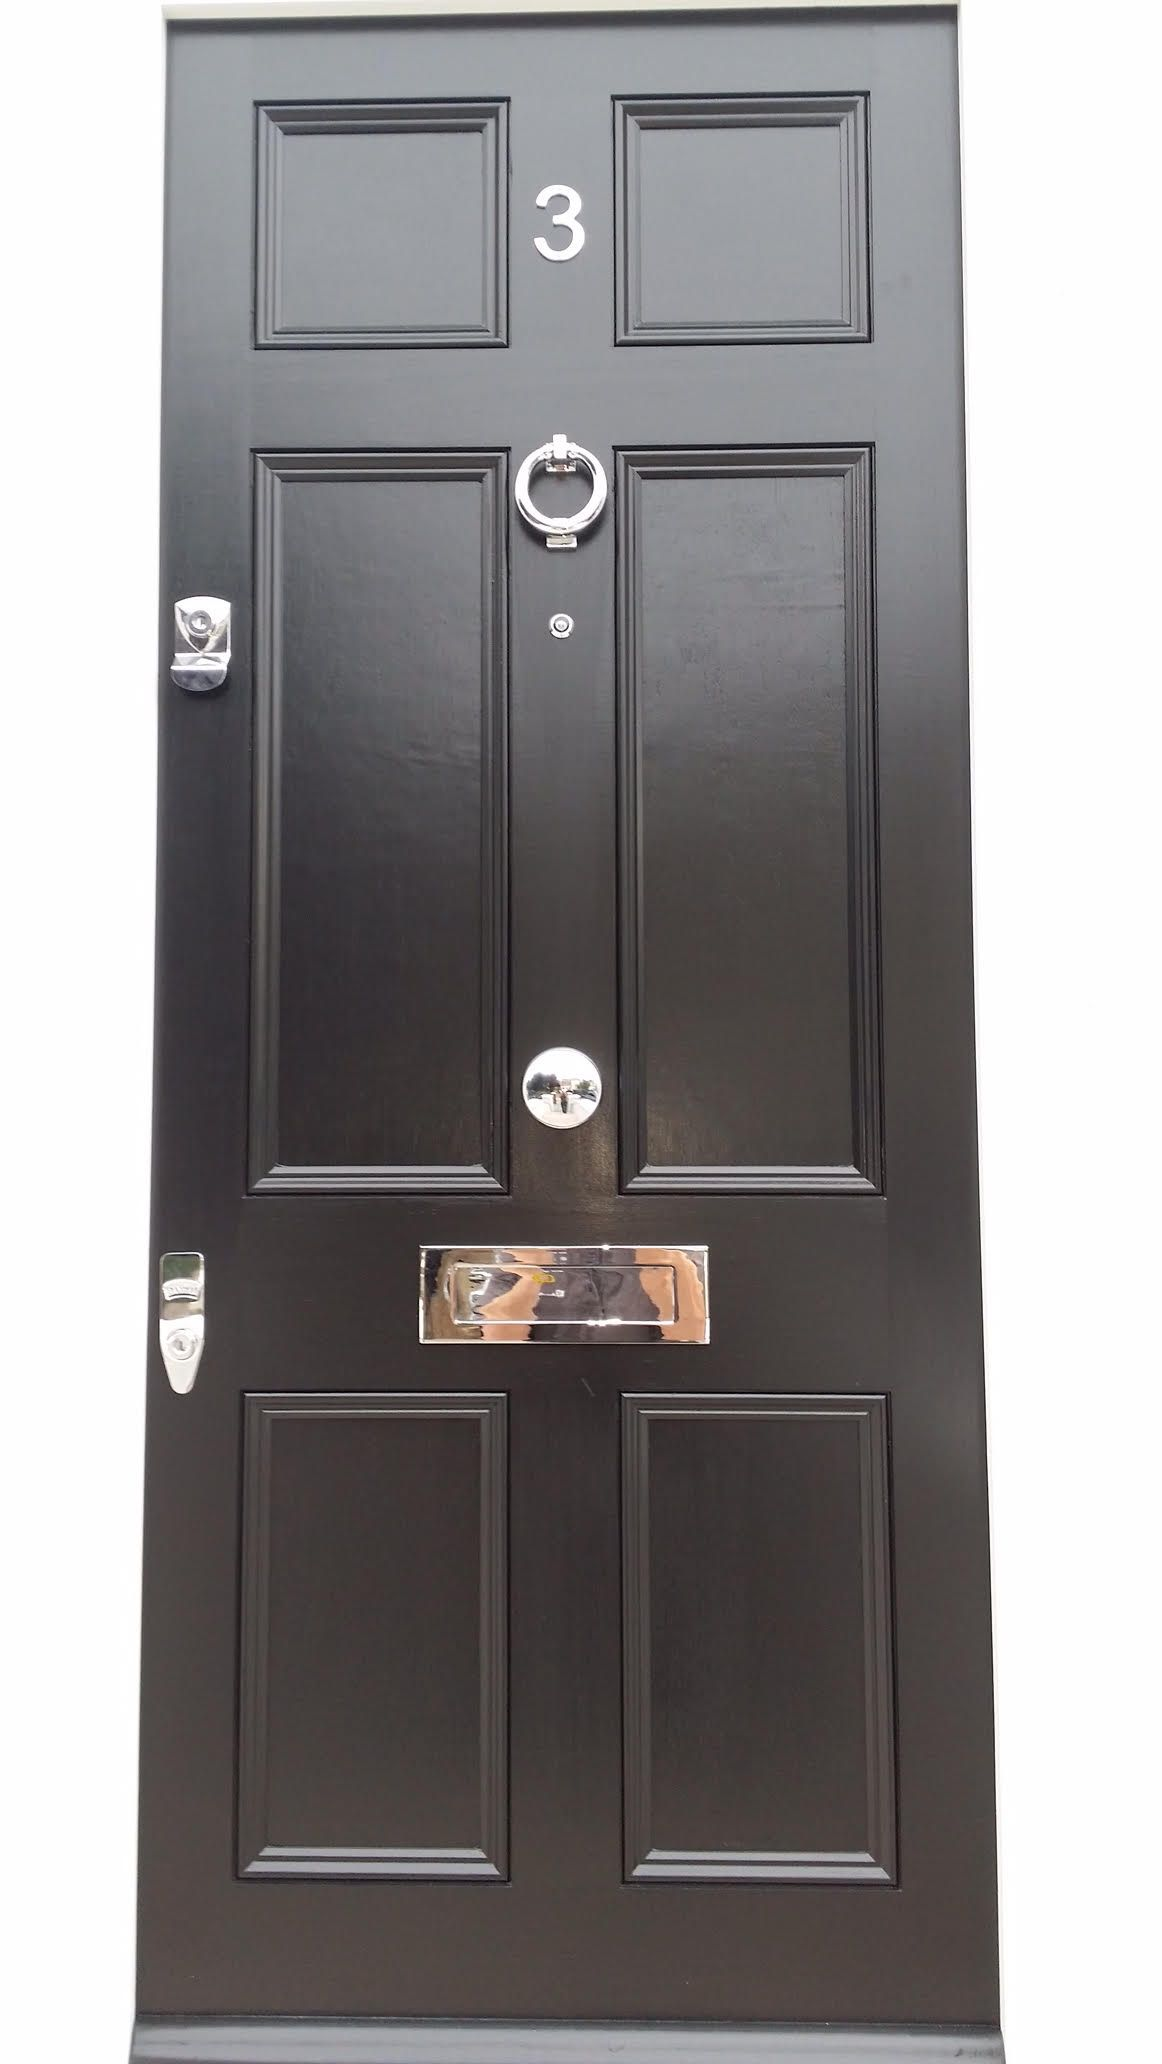 Banham security doors and door furniture provide effective front door security for London. Made with steel our high security doors keep homes safe.  sc 1 st  Pinterest & Bespoke door with Banham Locks and Furniture #security #locks #doors ...